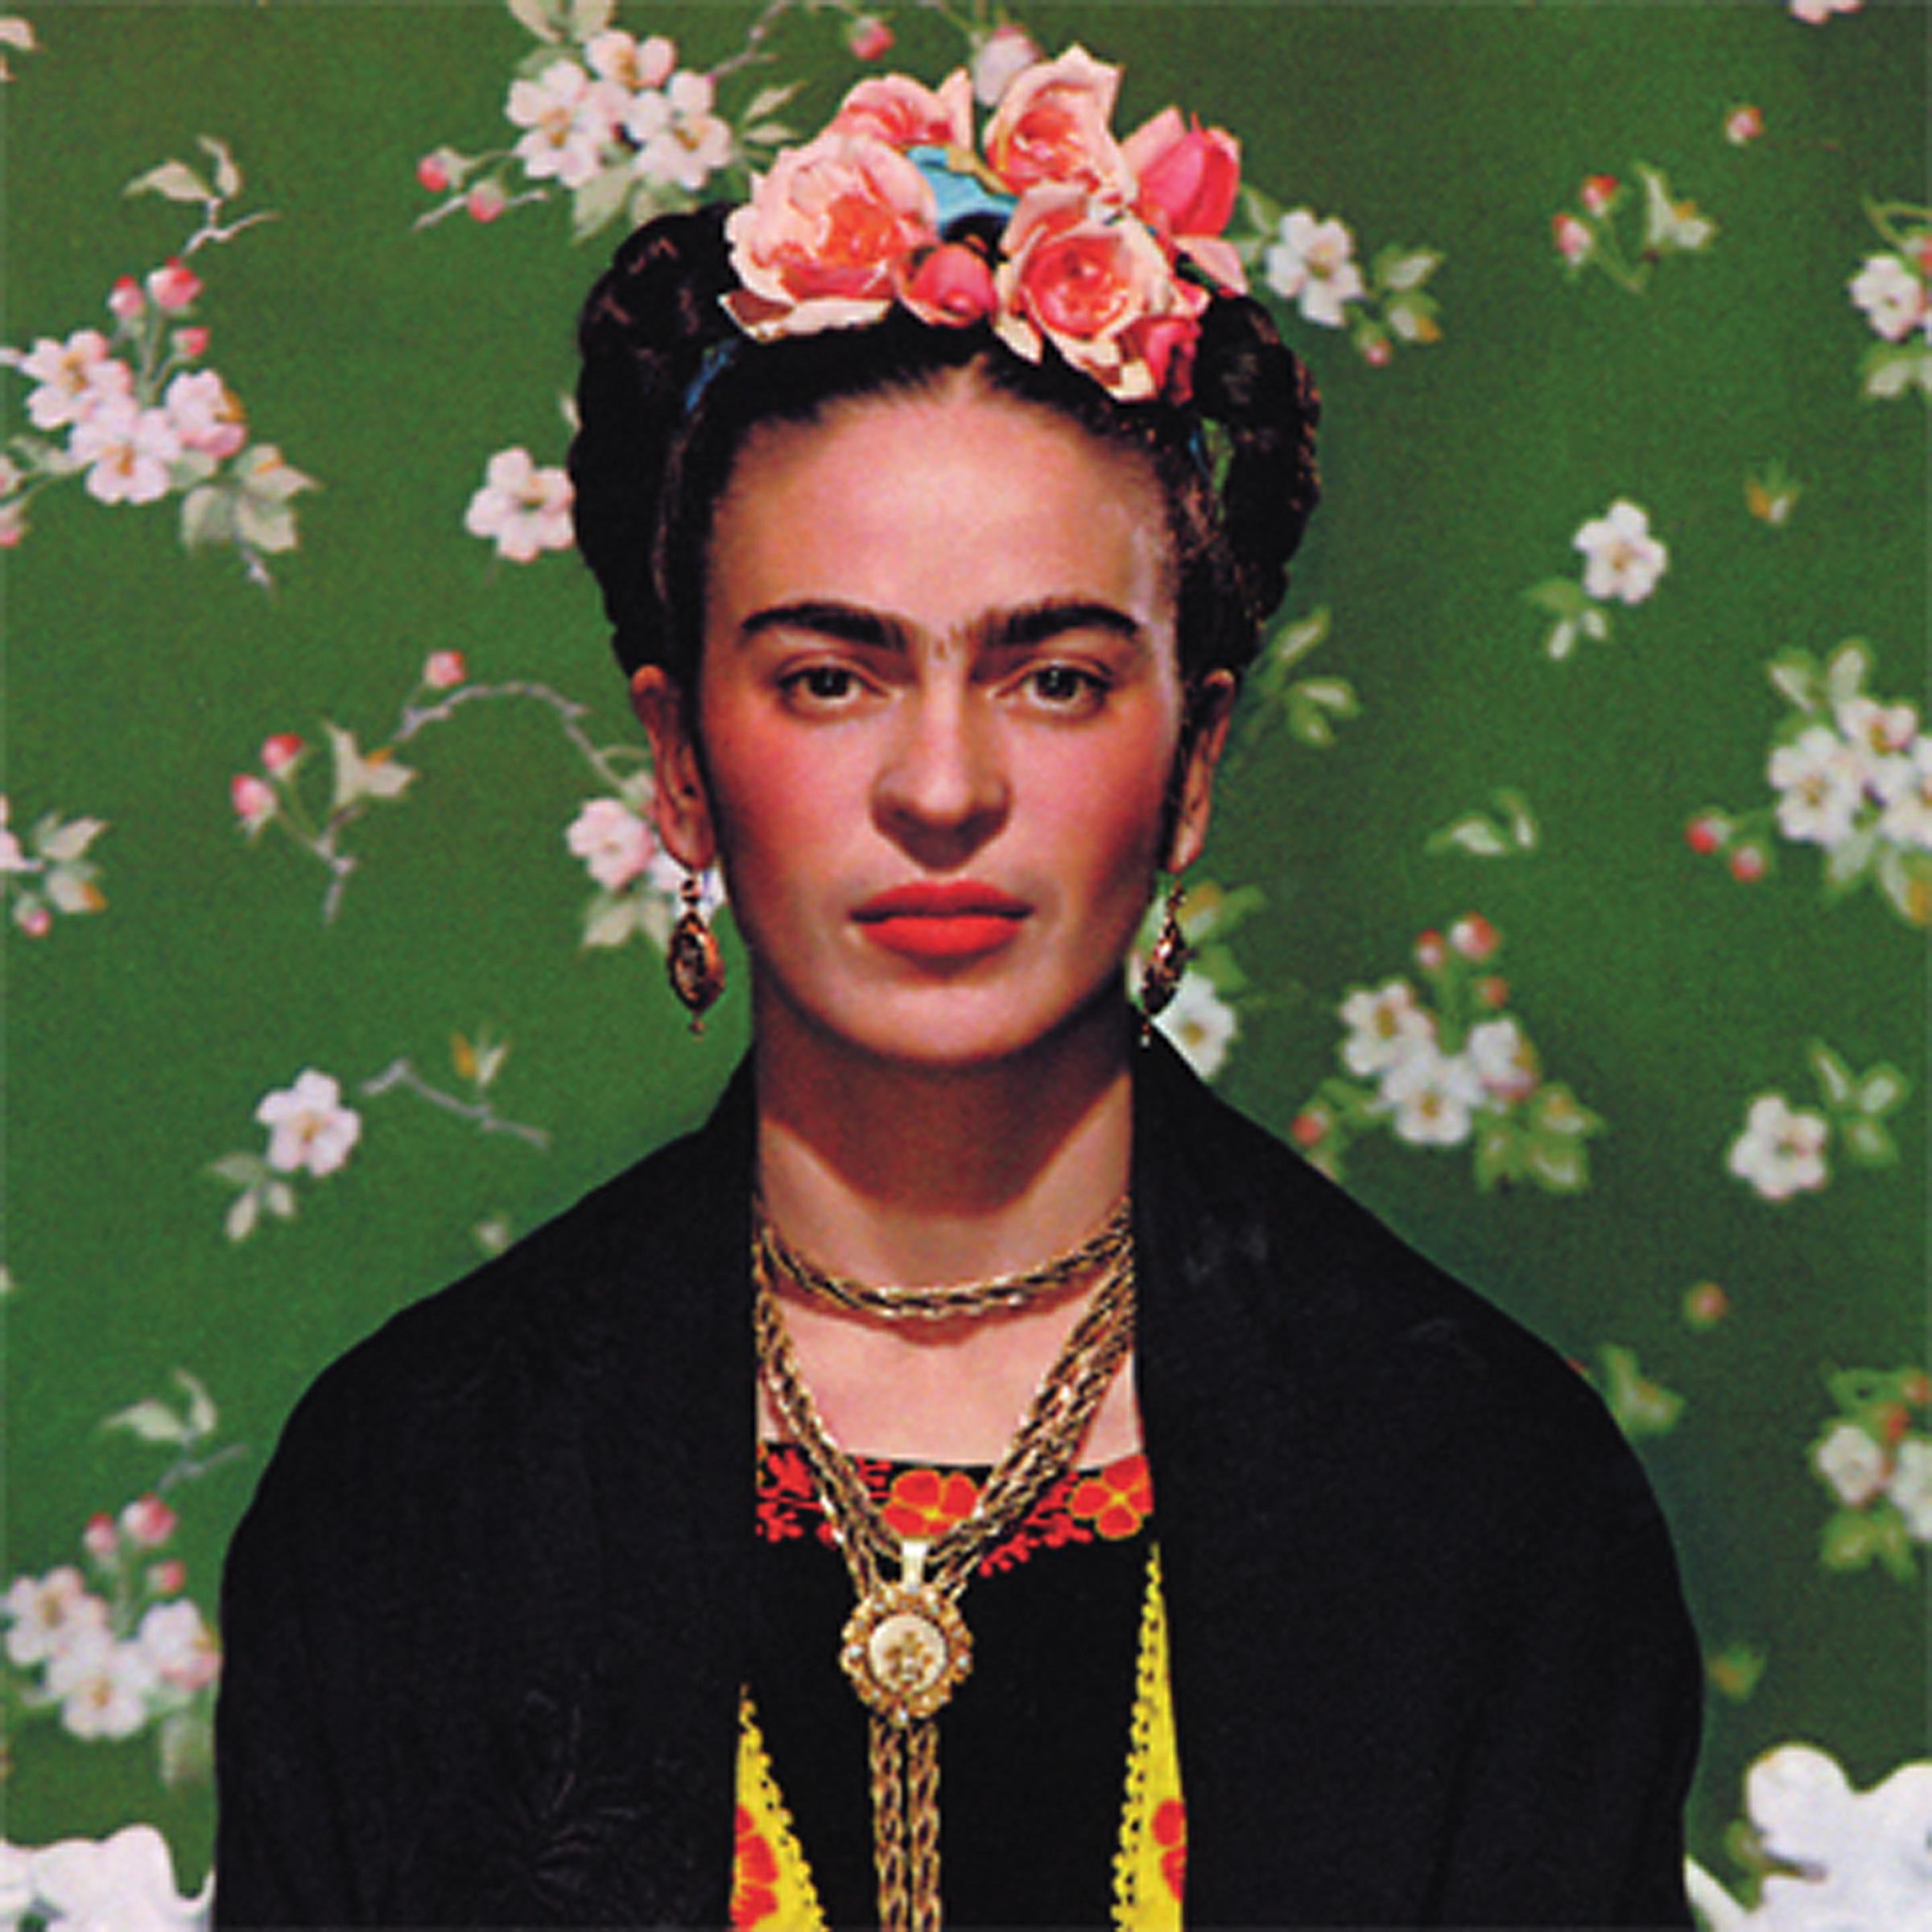 frida kahlo more than three women artists frida on white bench photograph by nickolas muray 1939 submitted image